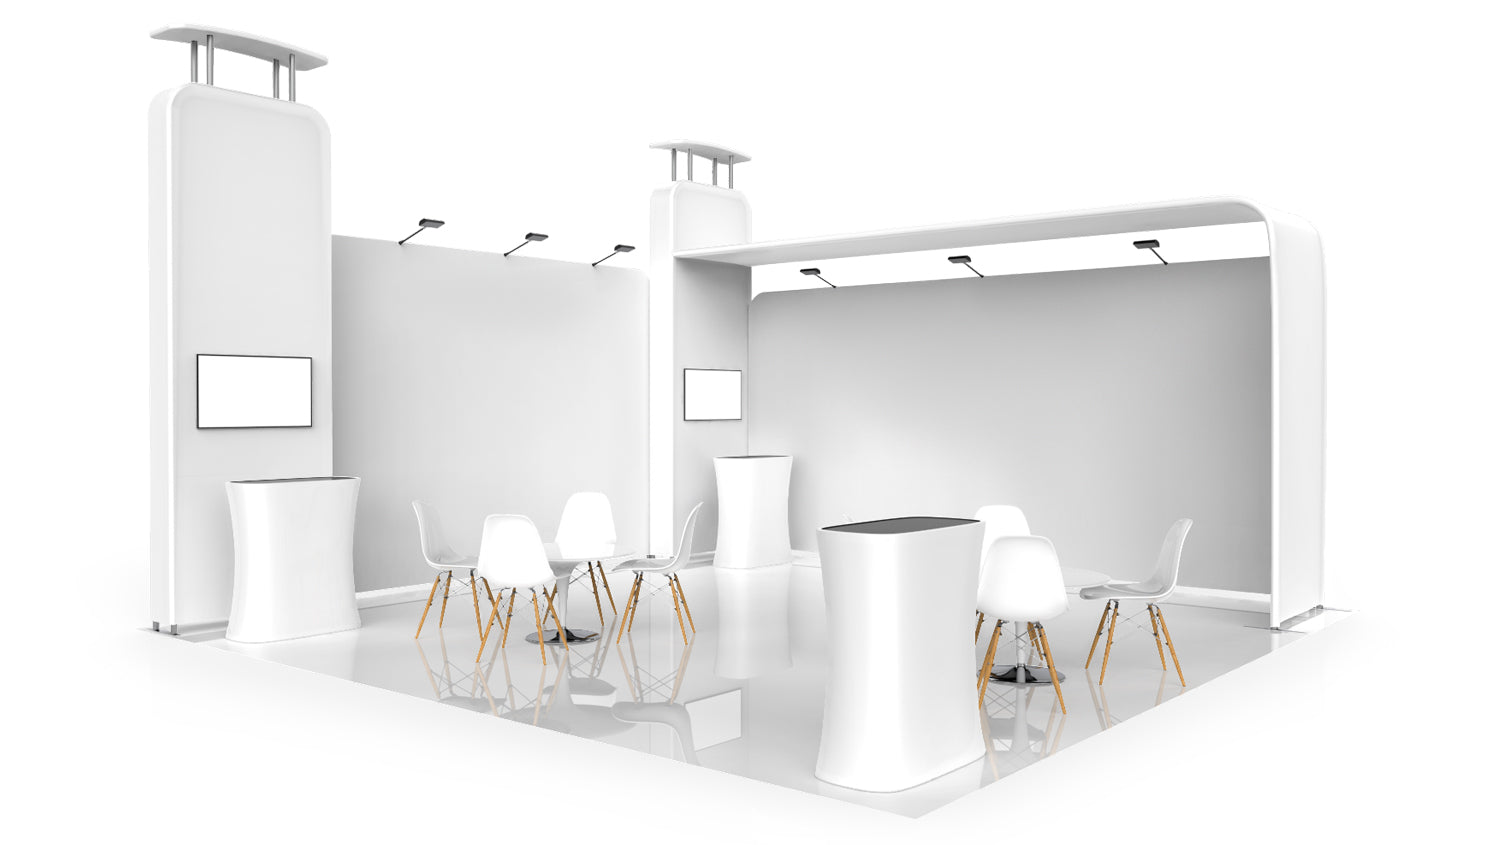 20x20 booth layout 3D model Pro-Package C corner view